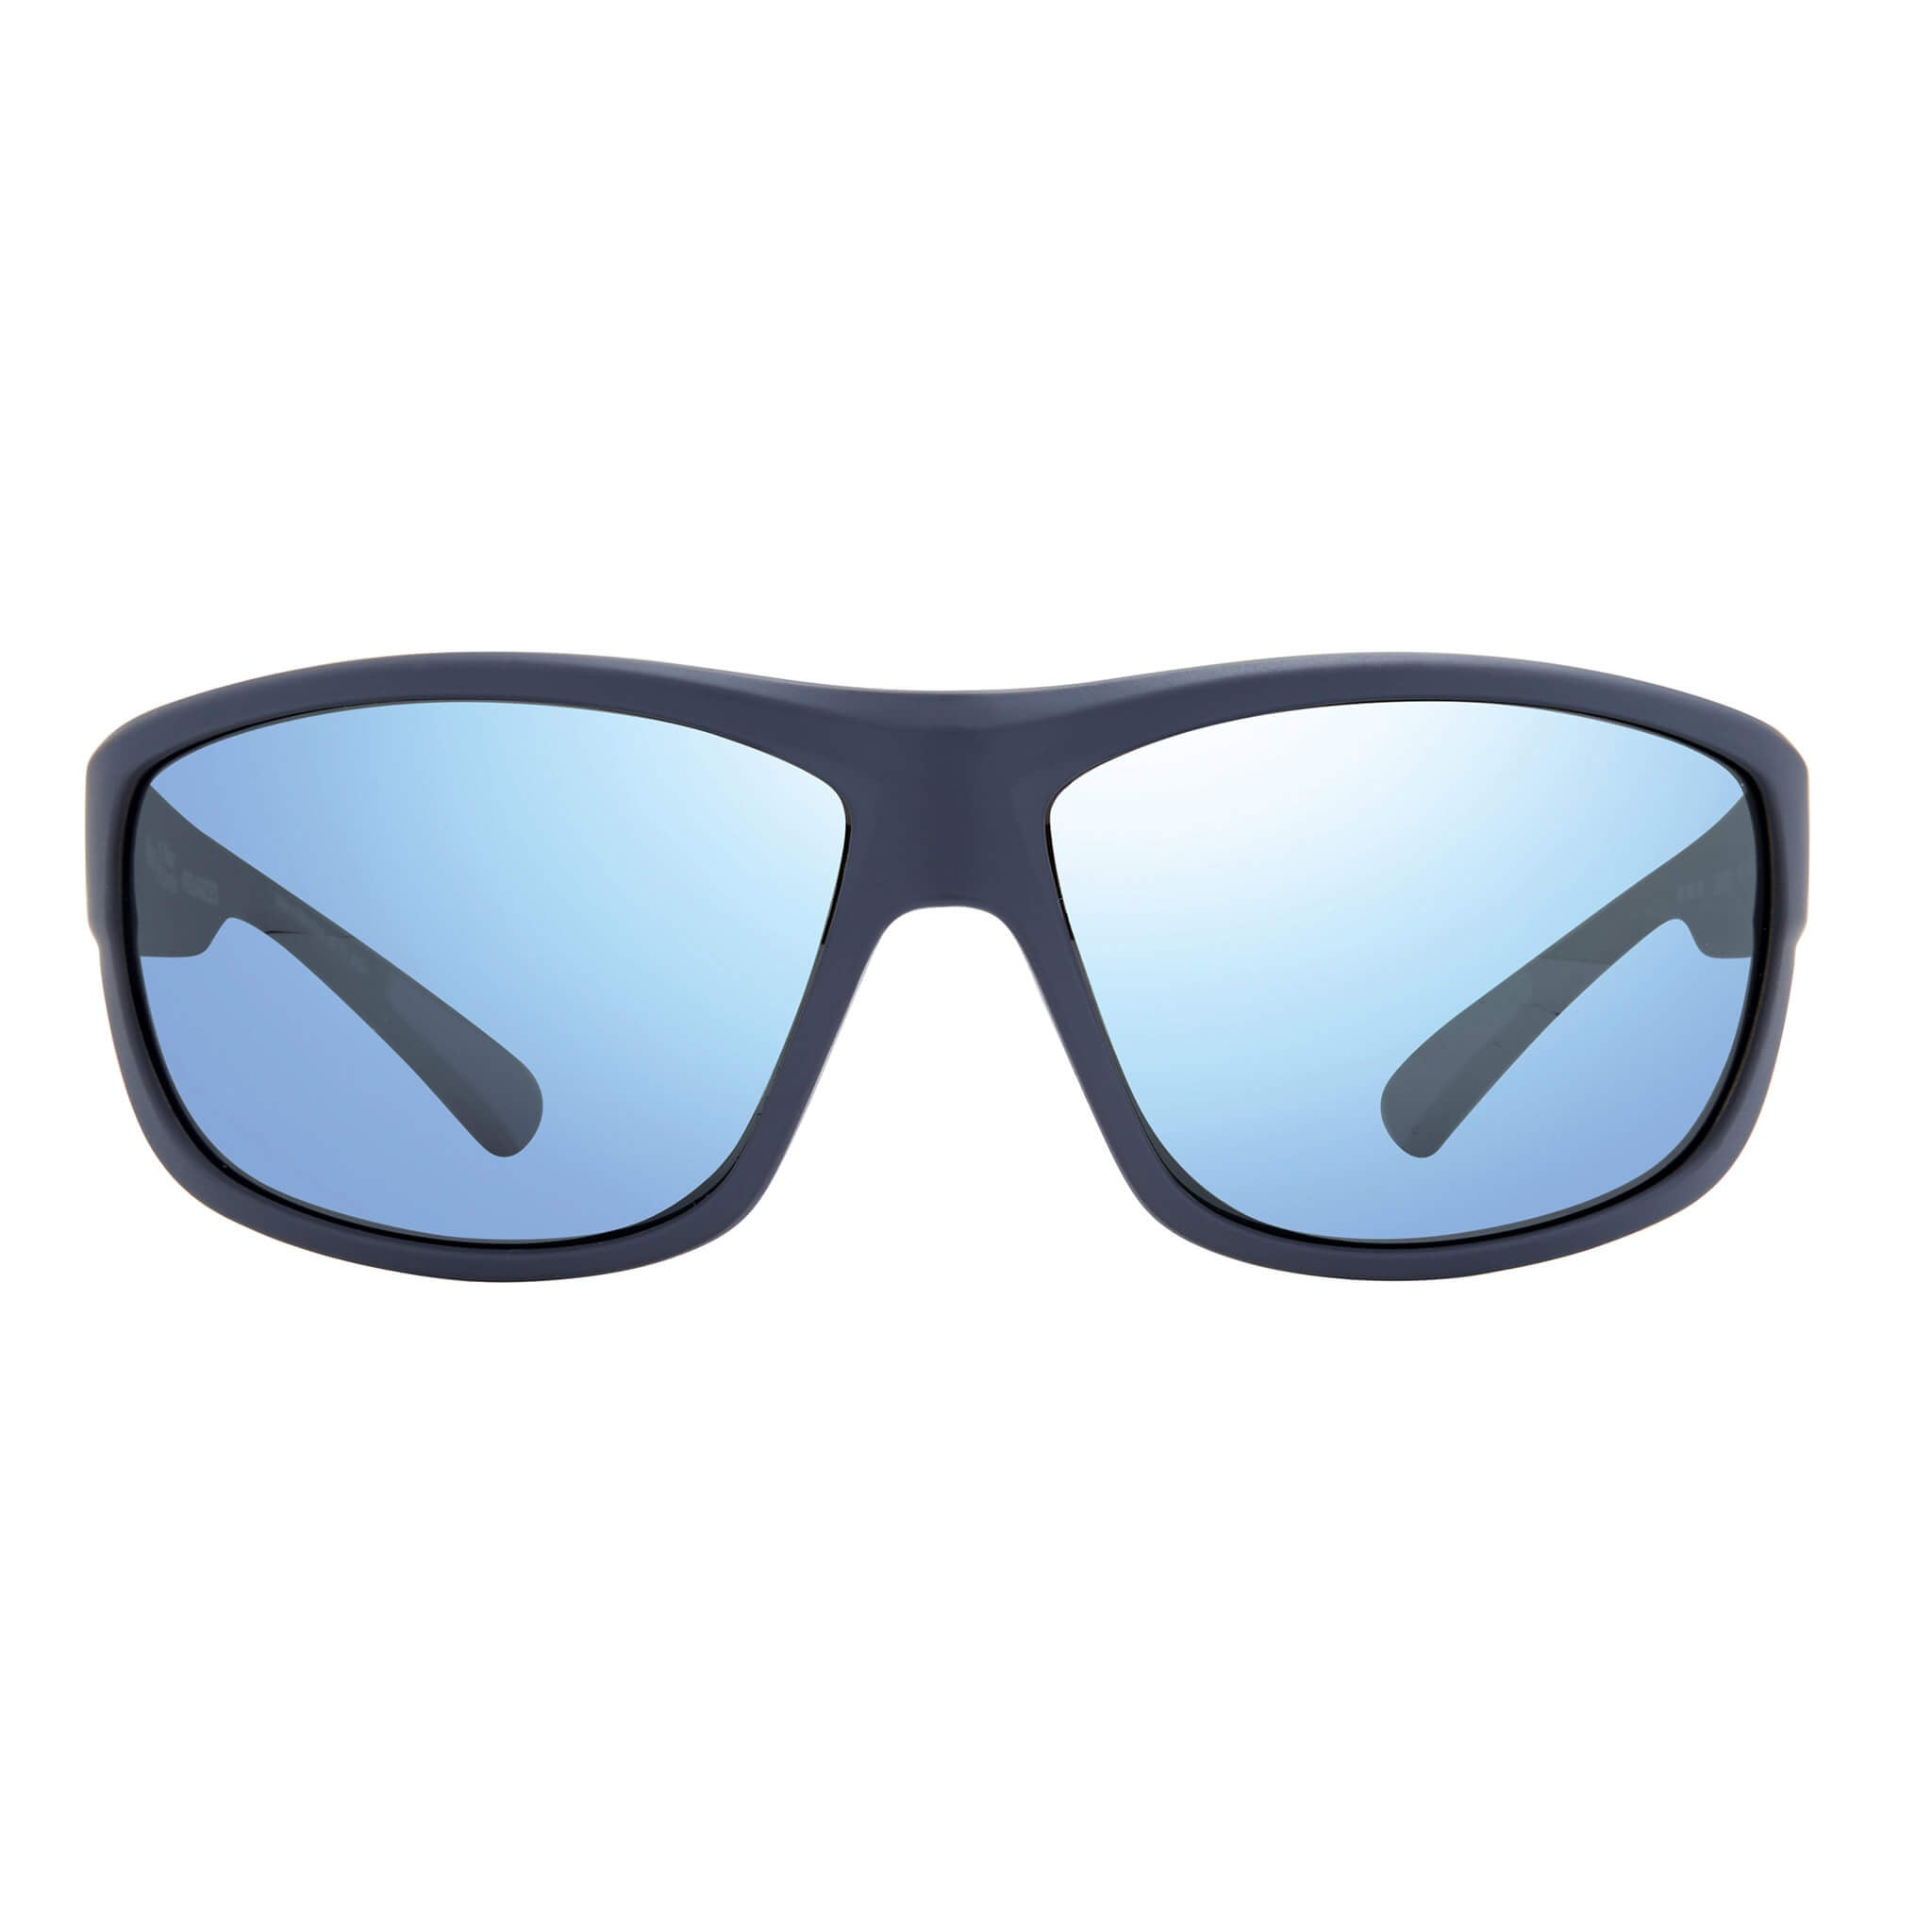 Blue + blue water lens:Front view of Bear Grylls Revo Caper Sunglasses